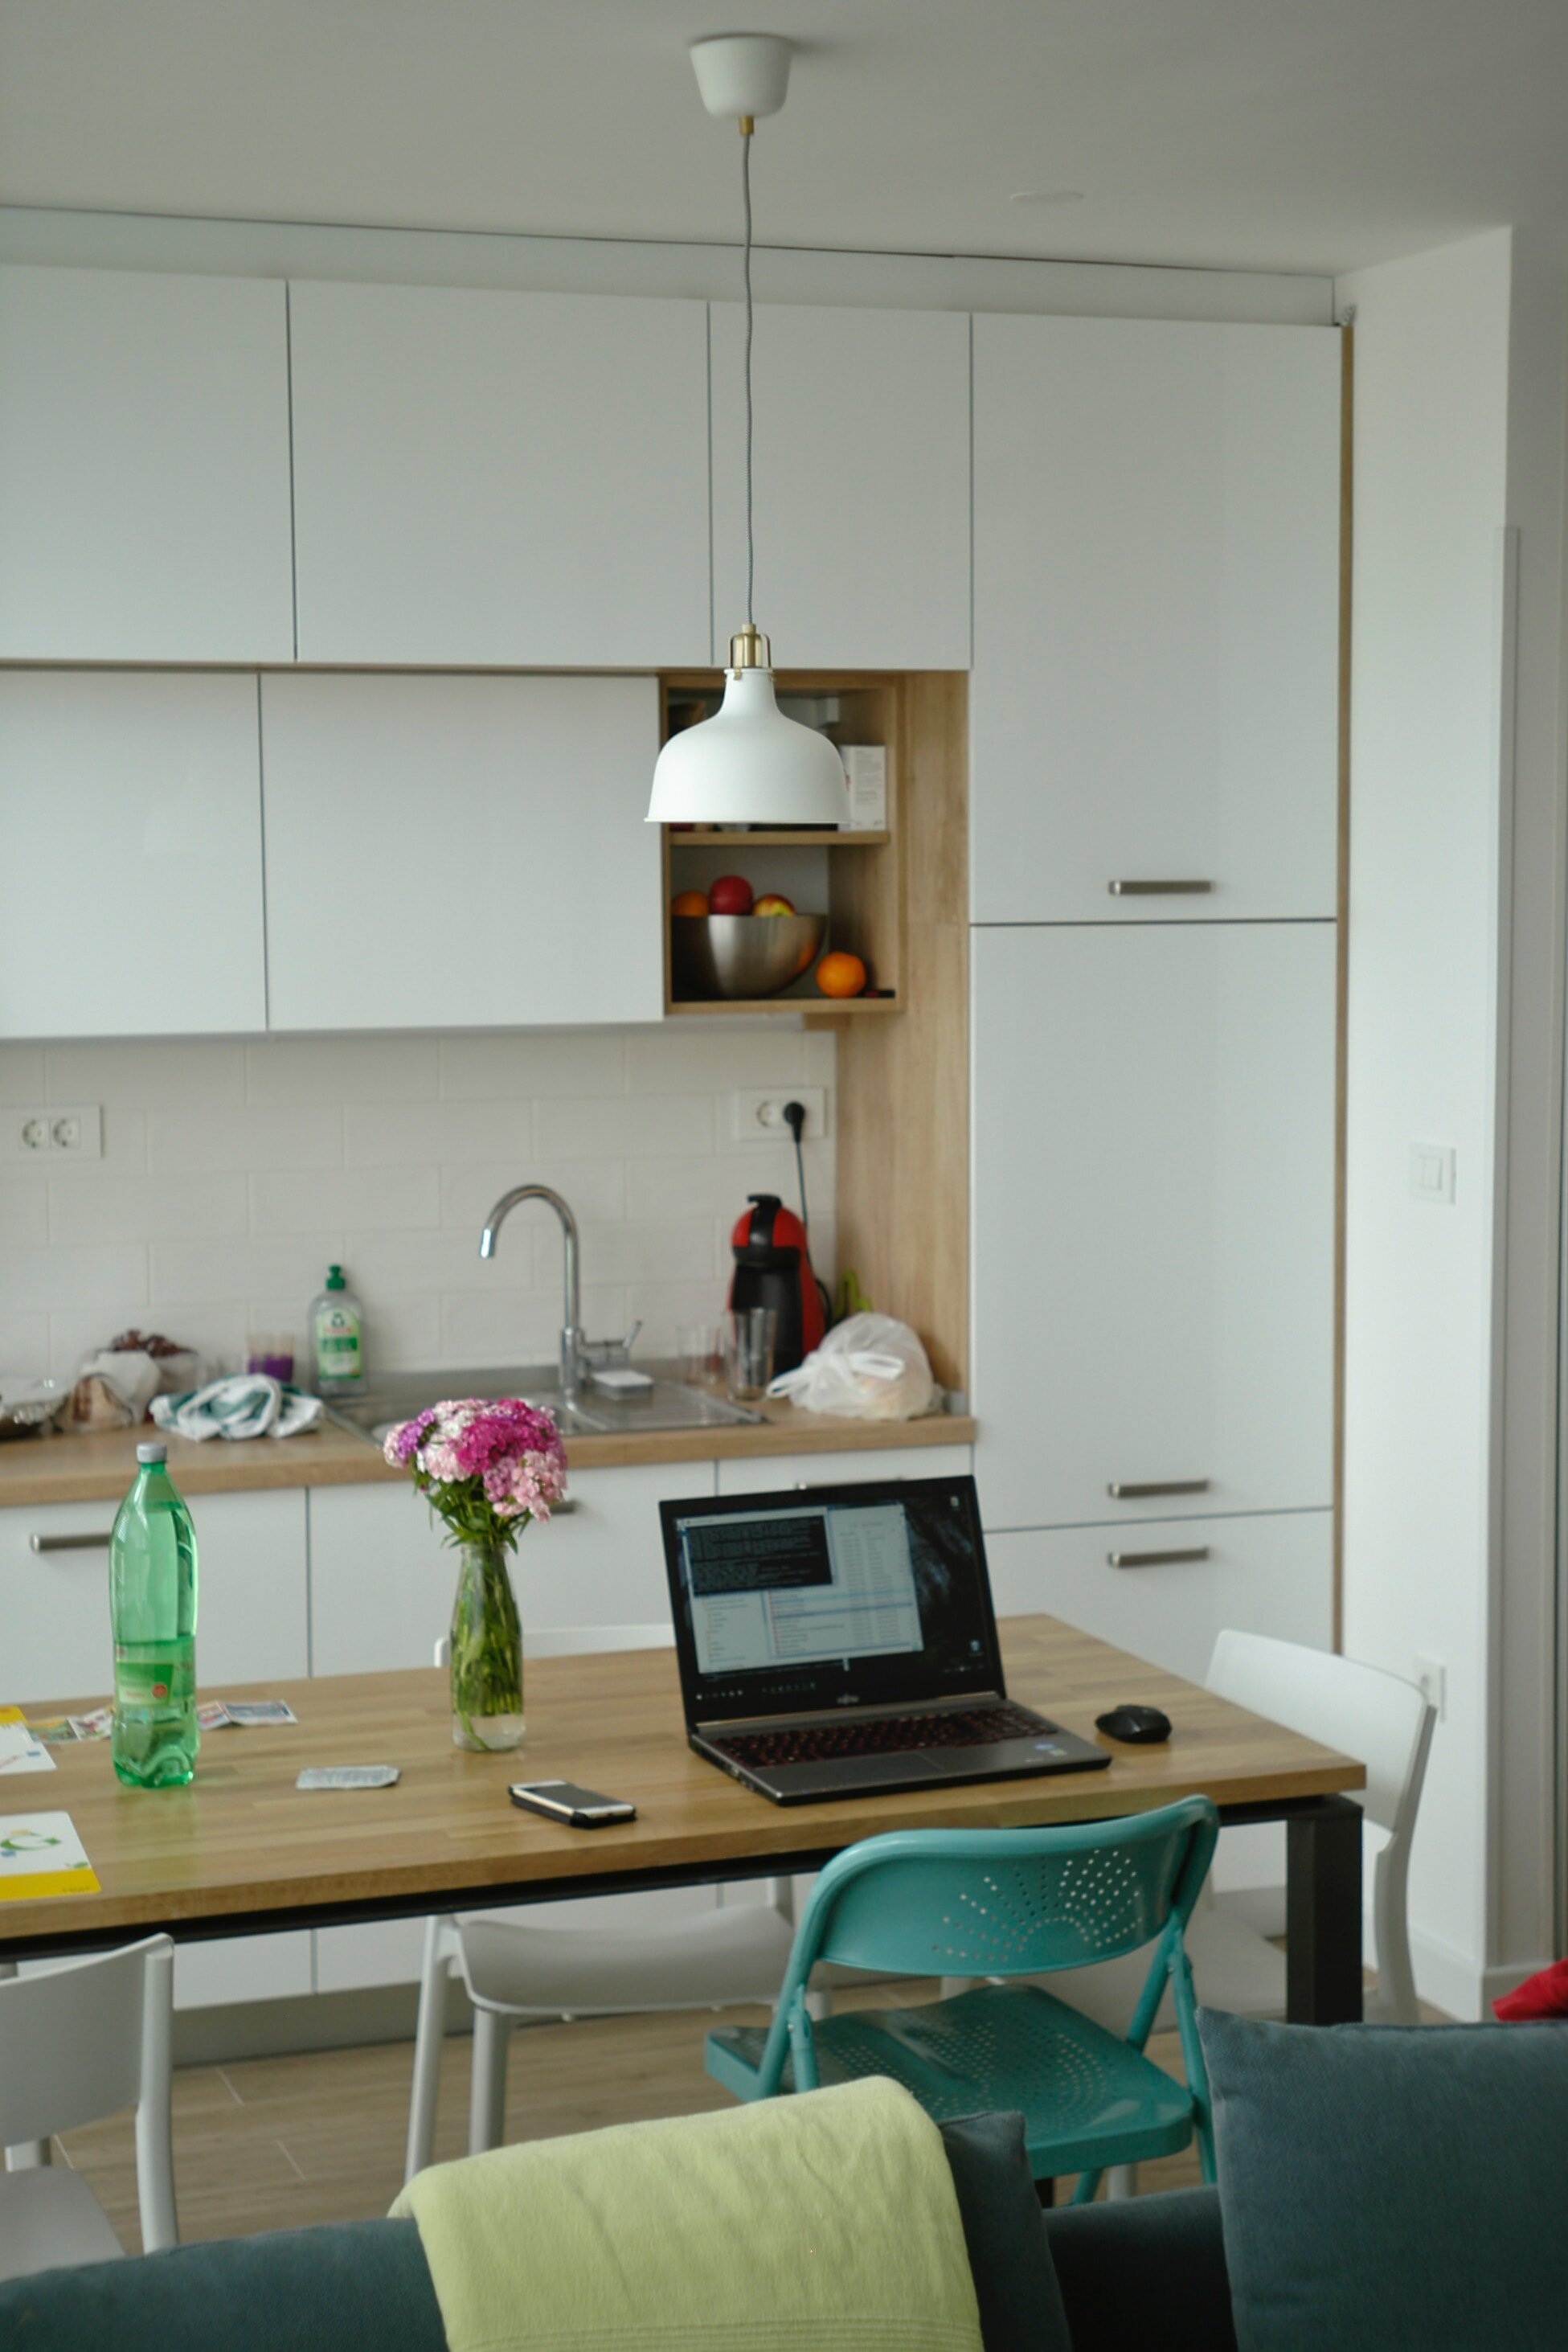 Office Wide Kitchen Cleaning Memo — Kitchener Clean